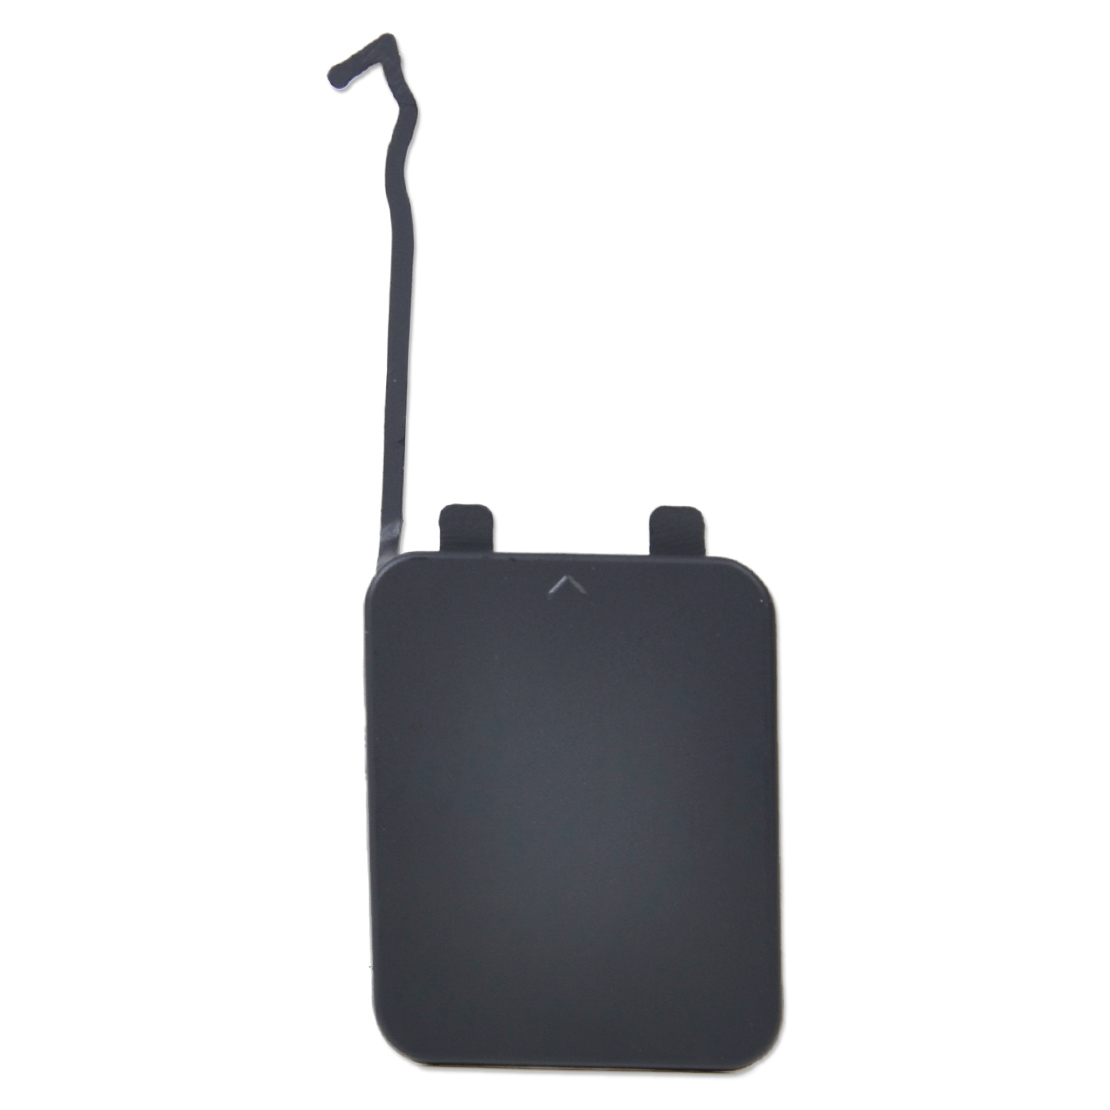 beler <font><b>211</b></font> 880 14 05 2118801405 Rear Bumper Tow Hook Cover Cap for <font><b>Mercedes</b></font> <font><b>Benz</b></font> E-class W211 E320 E350 E550 E500 image